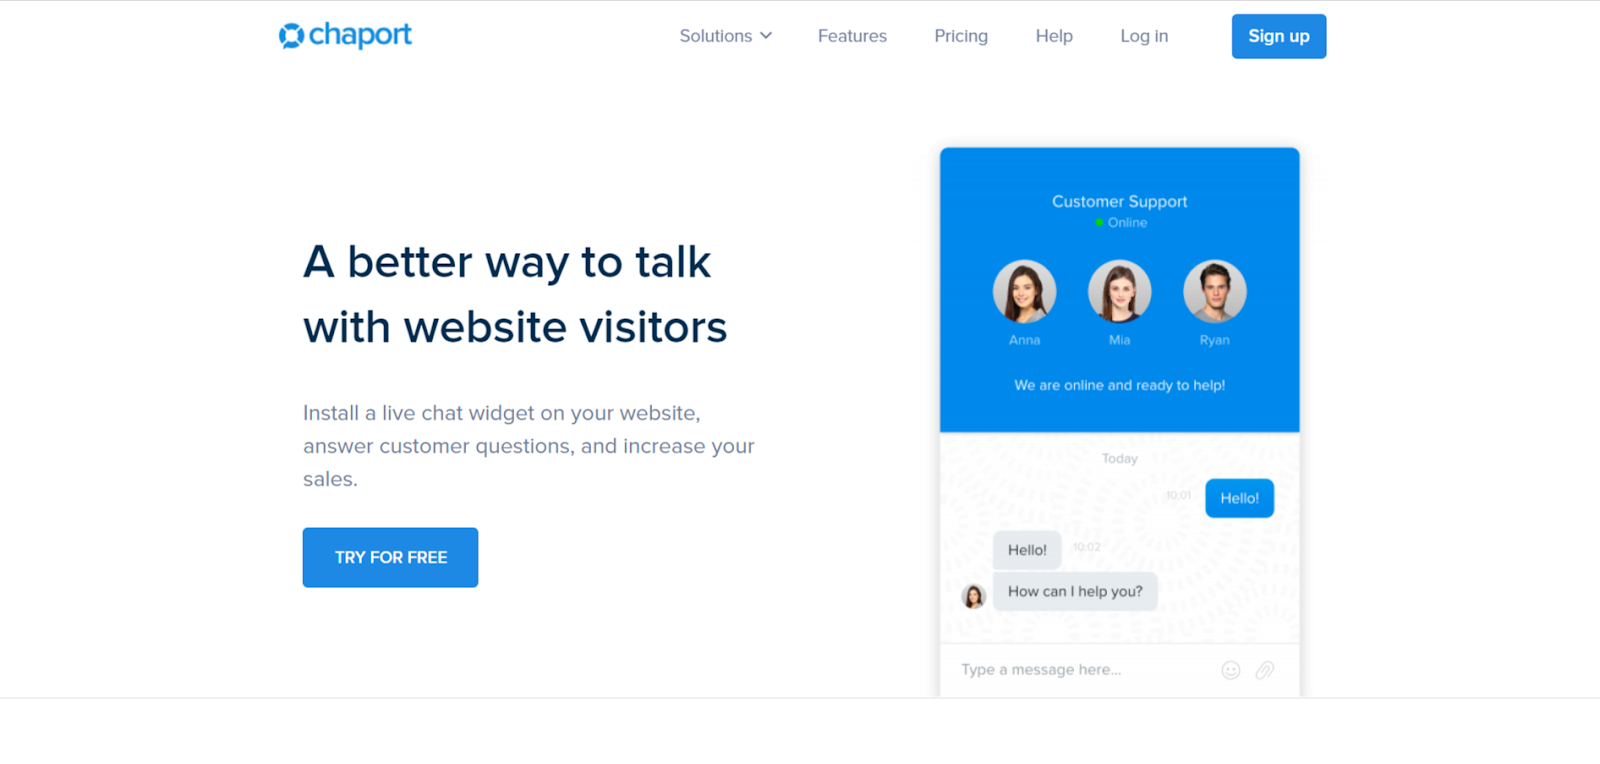 Chaport live chat software